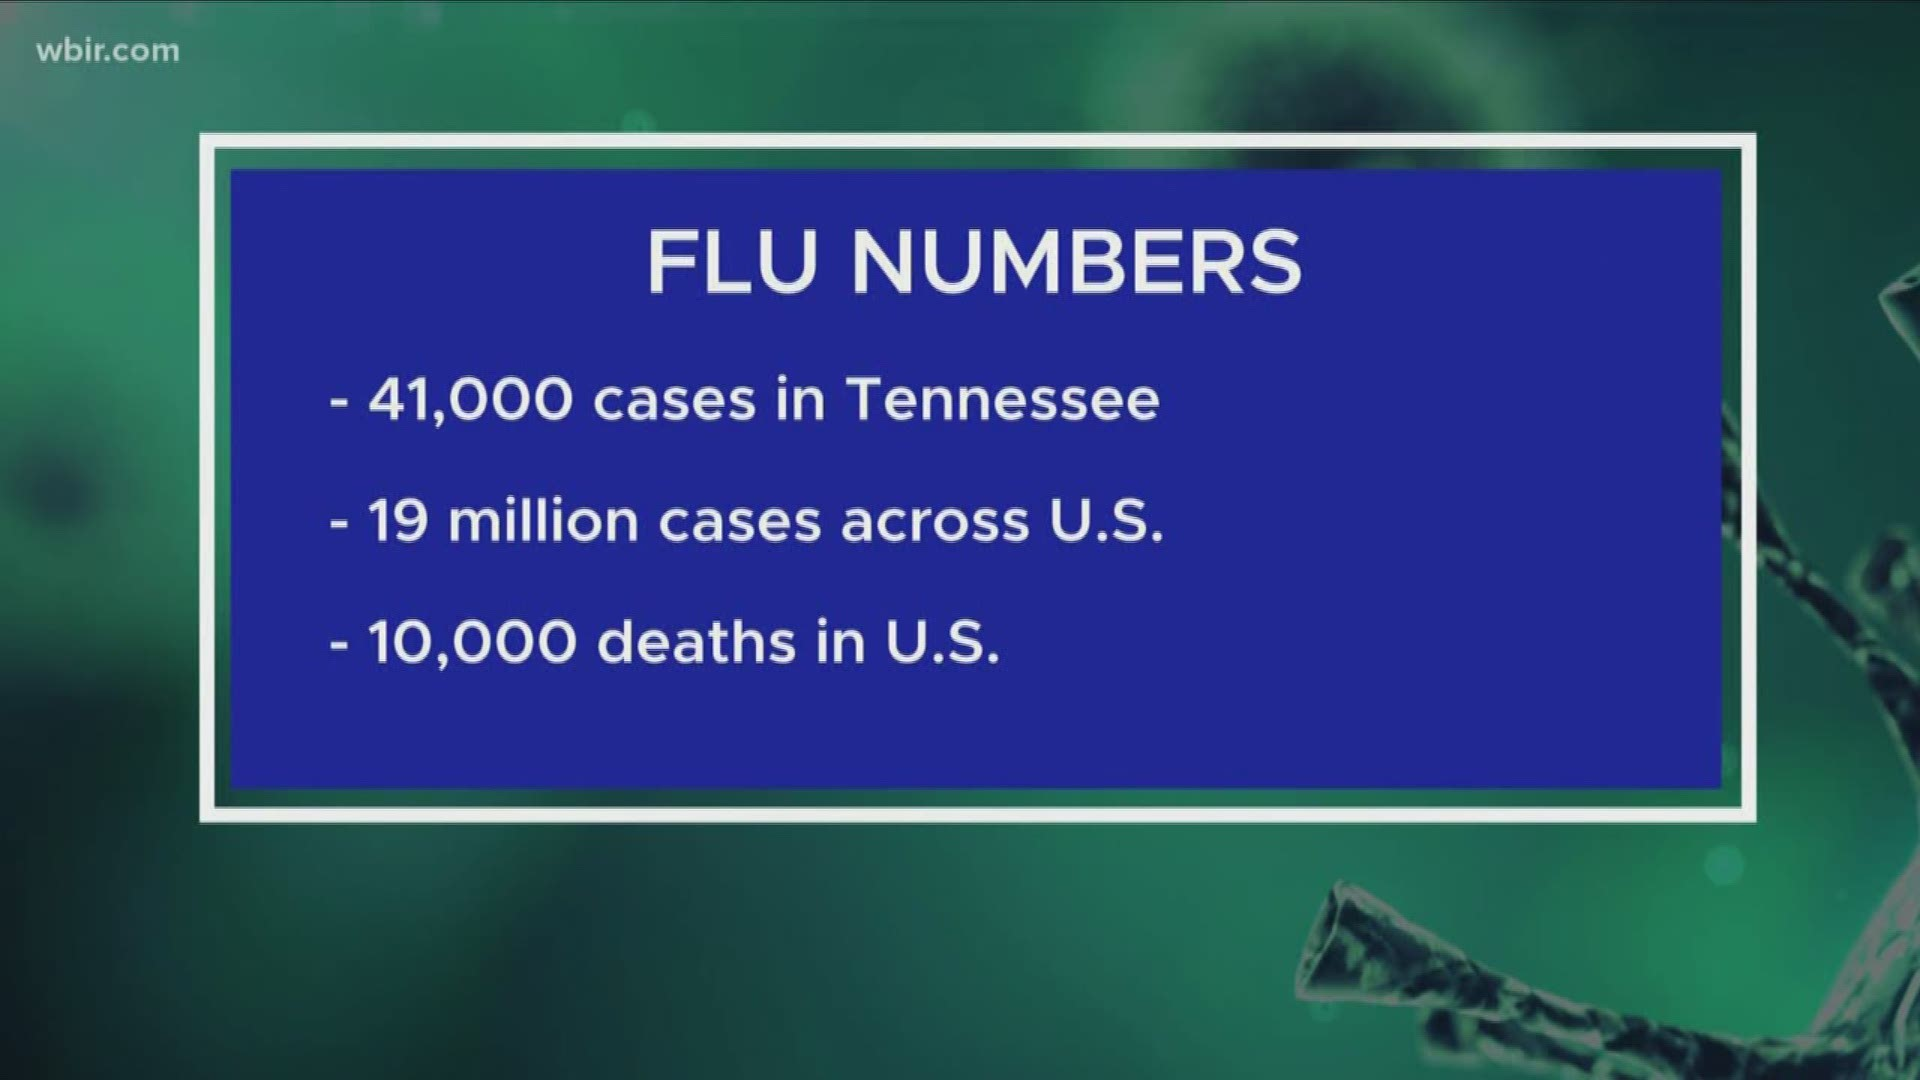 10 Children Have Died From The Flu In Tennessee This Season Wbir Com